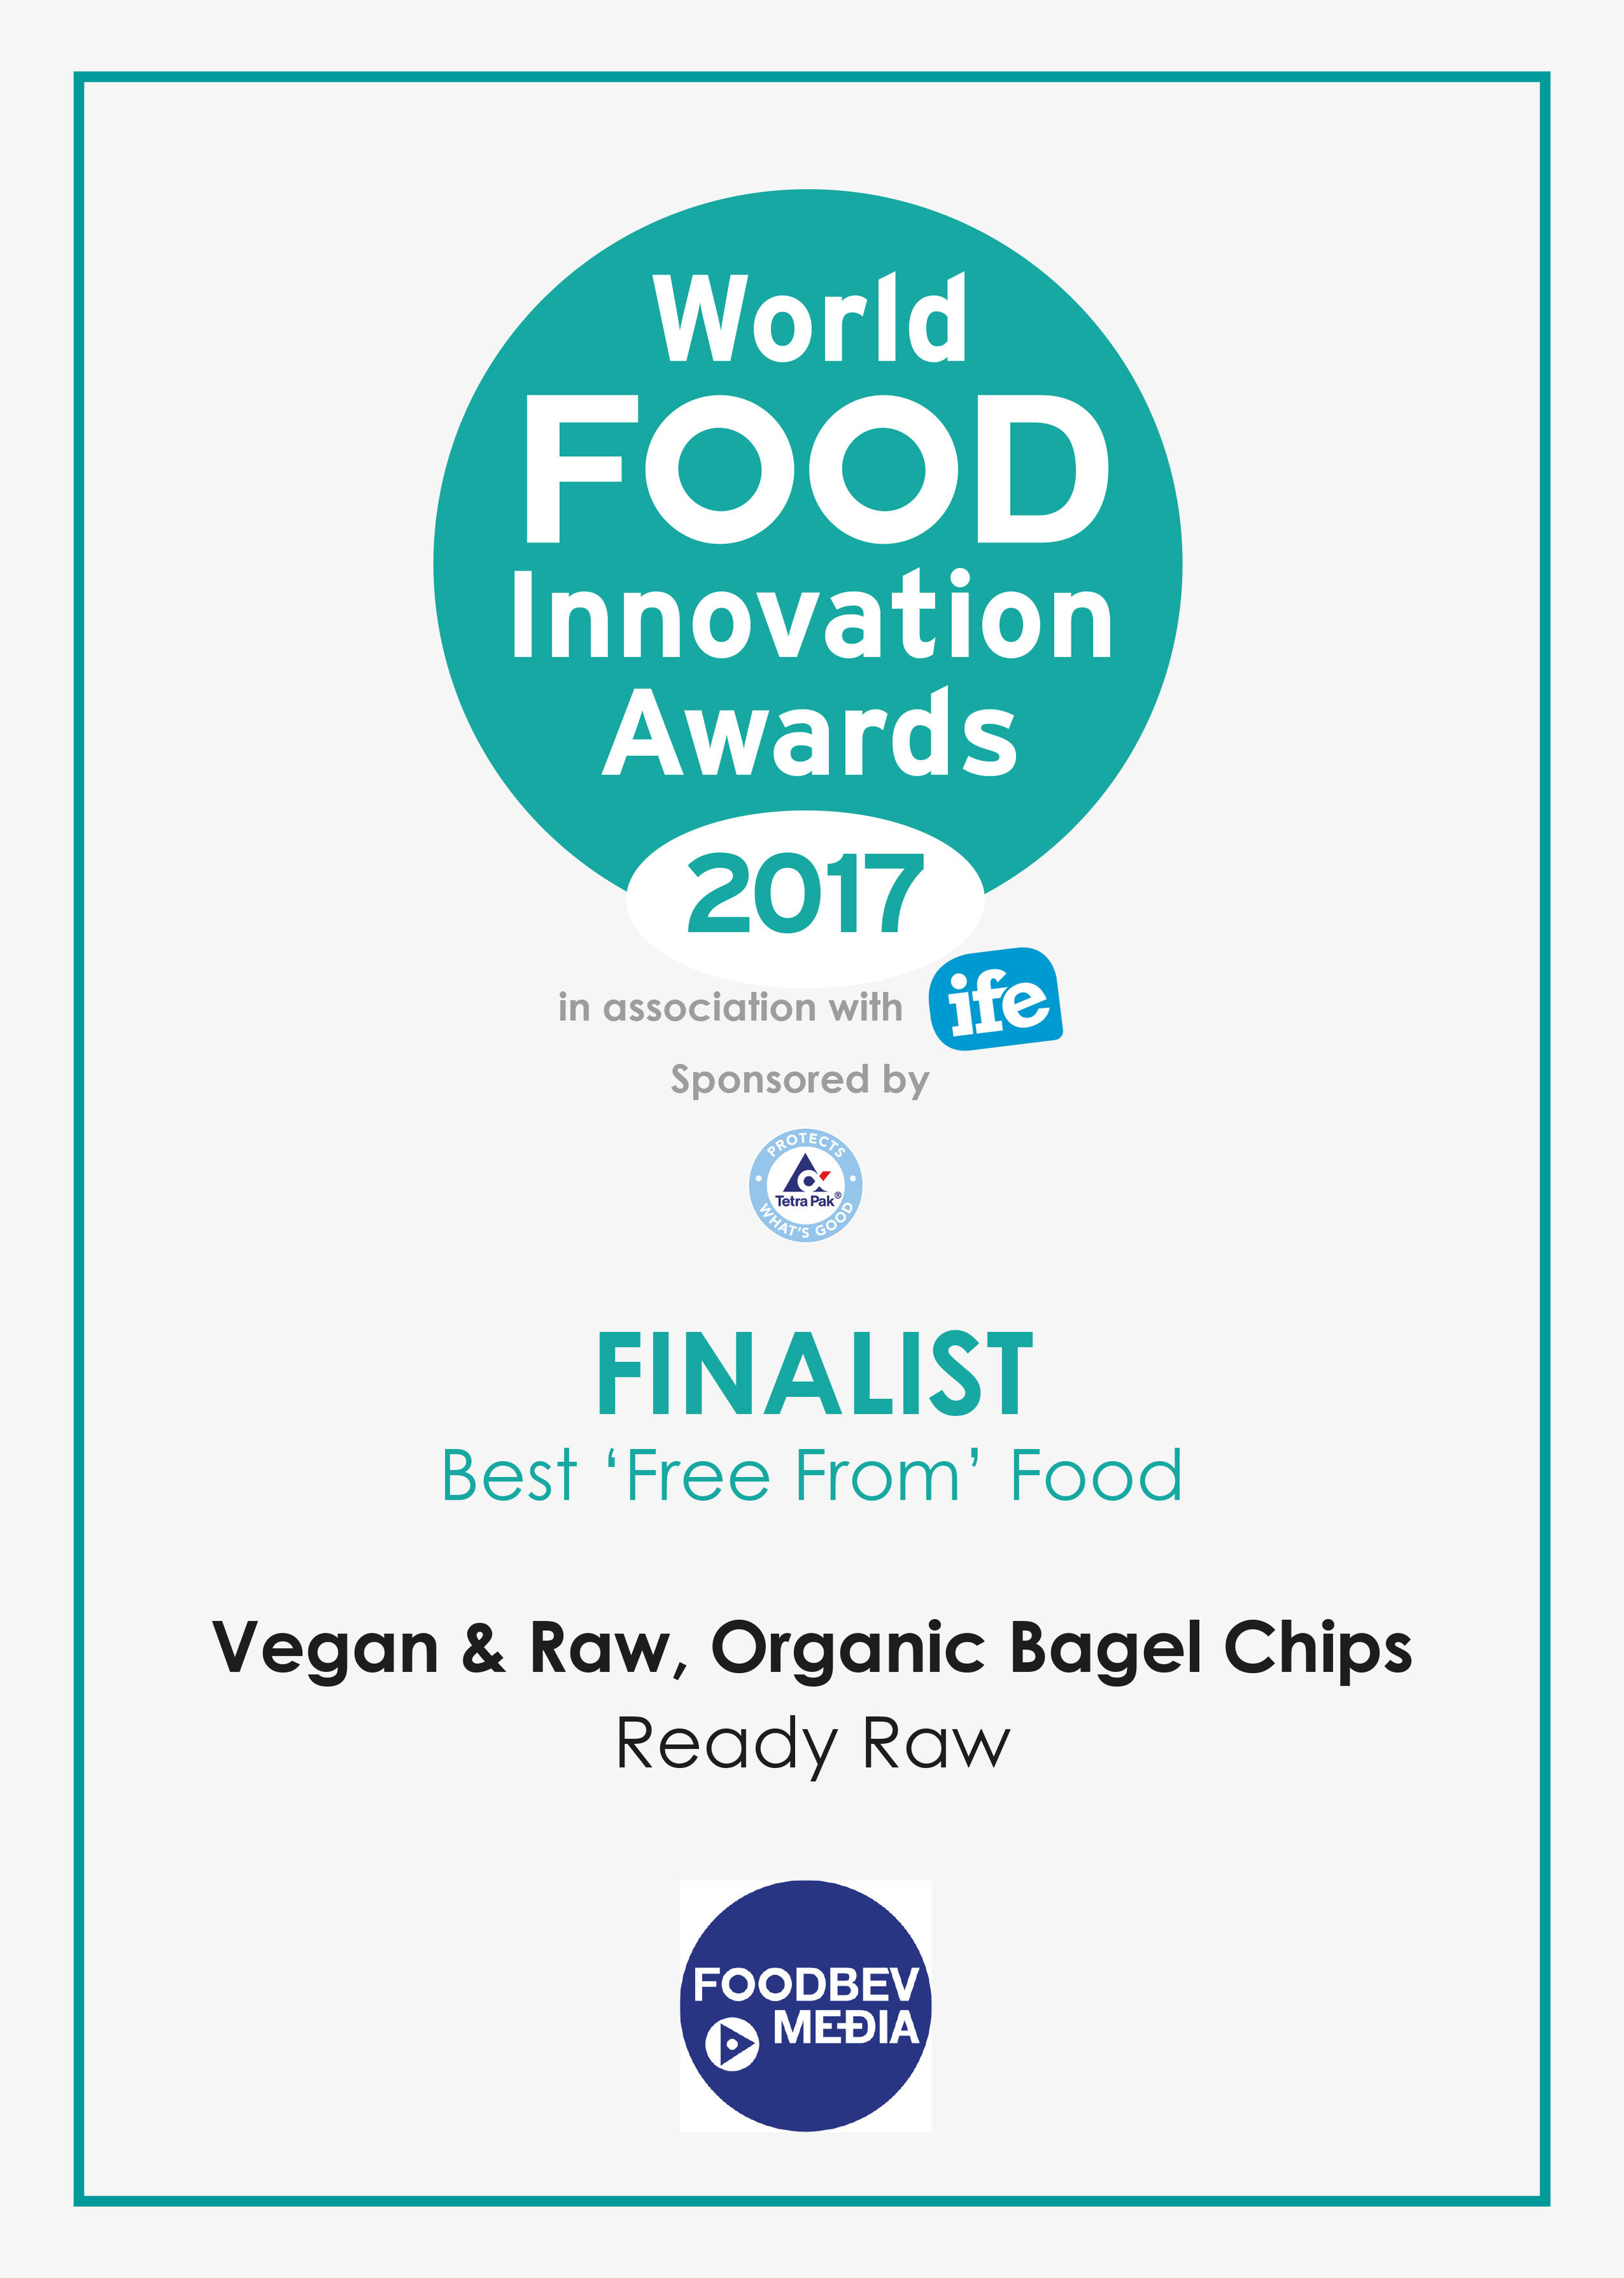 Our vegan and organic raw sprouted bagels and mini bagel chips were finalists in the World Food Inovation Awards 2017